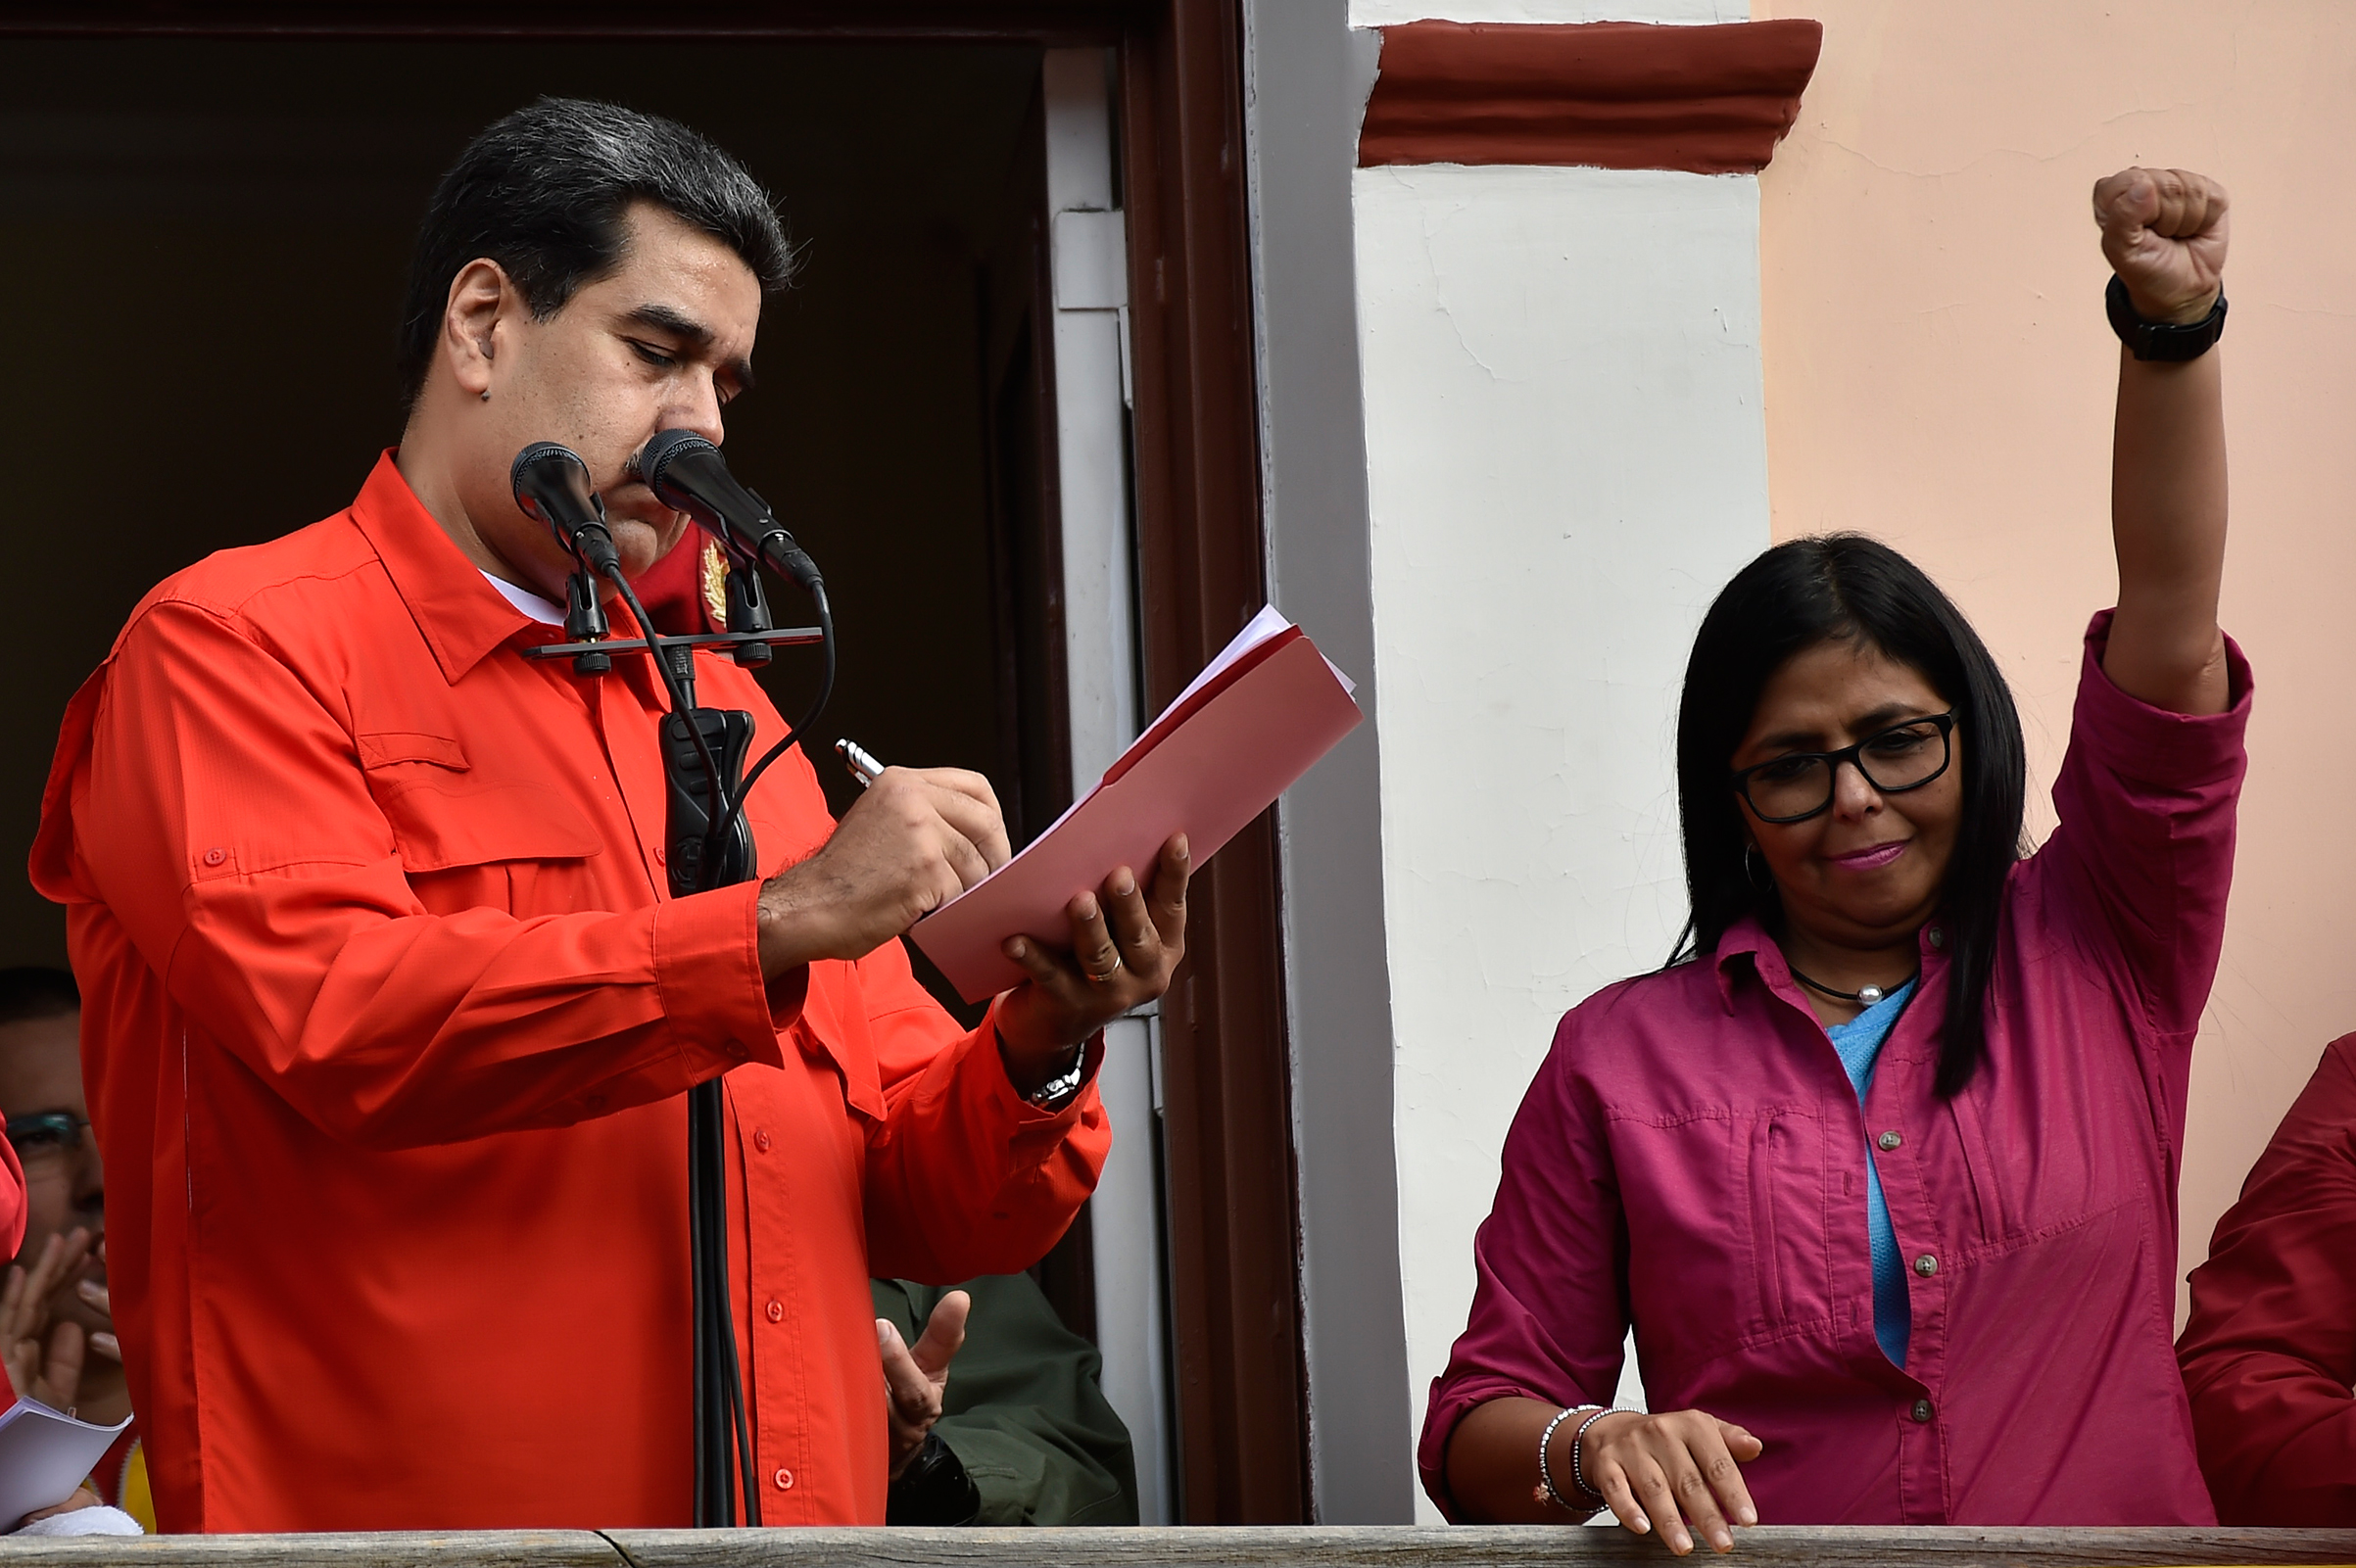 Venezuela's President Nicolás Maduro, next to Vice President Delcy Rodríguez, signs a document breaking off diplomatic ties with the U.S. at a balcony at the Miraflores Presidential Palace in Caracas on Jan. 23, 2019.